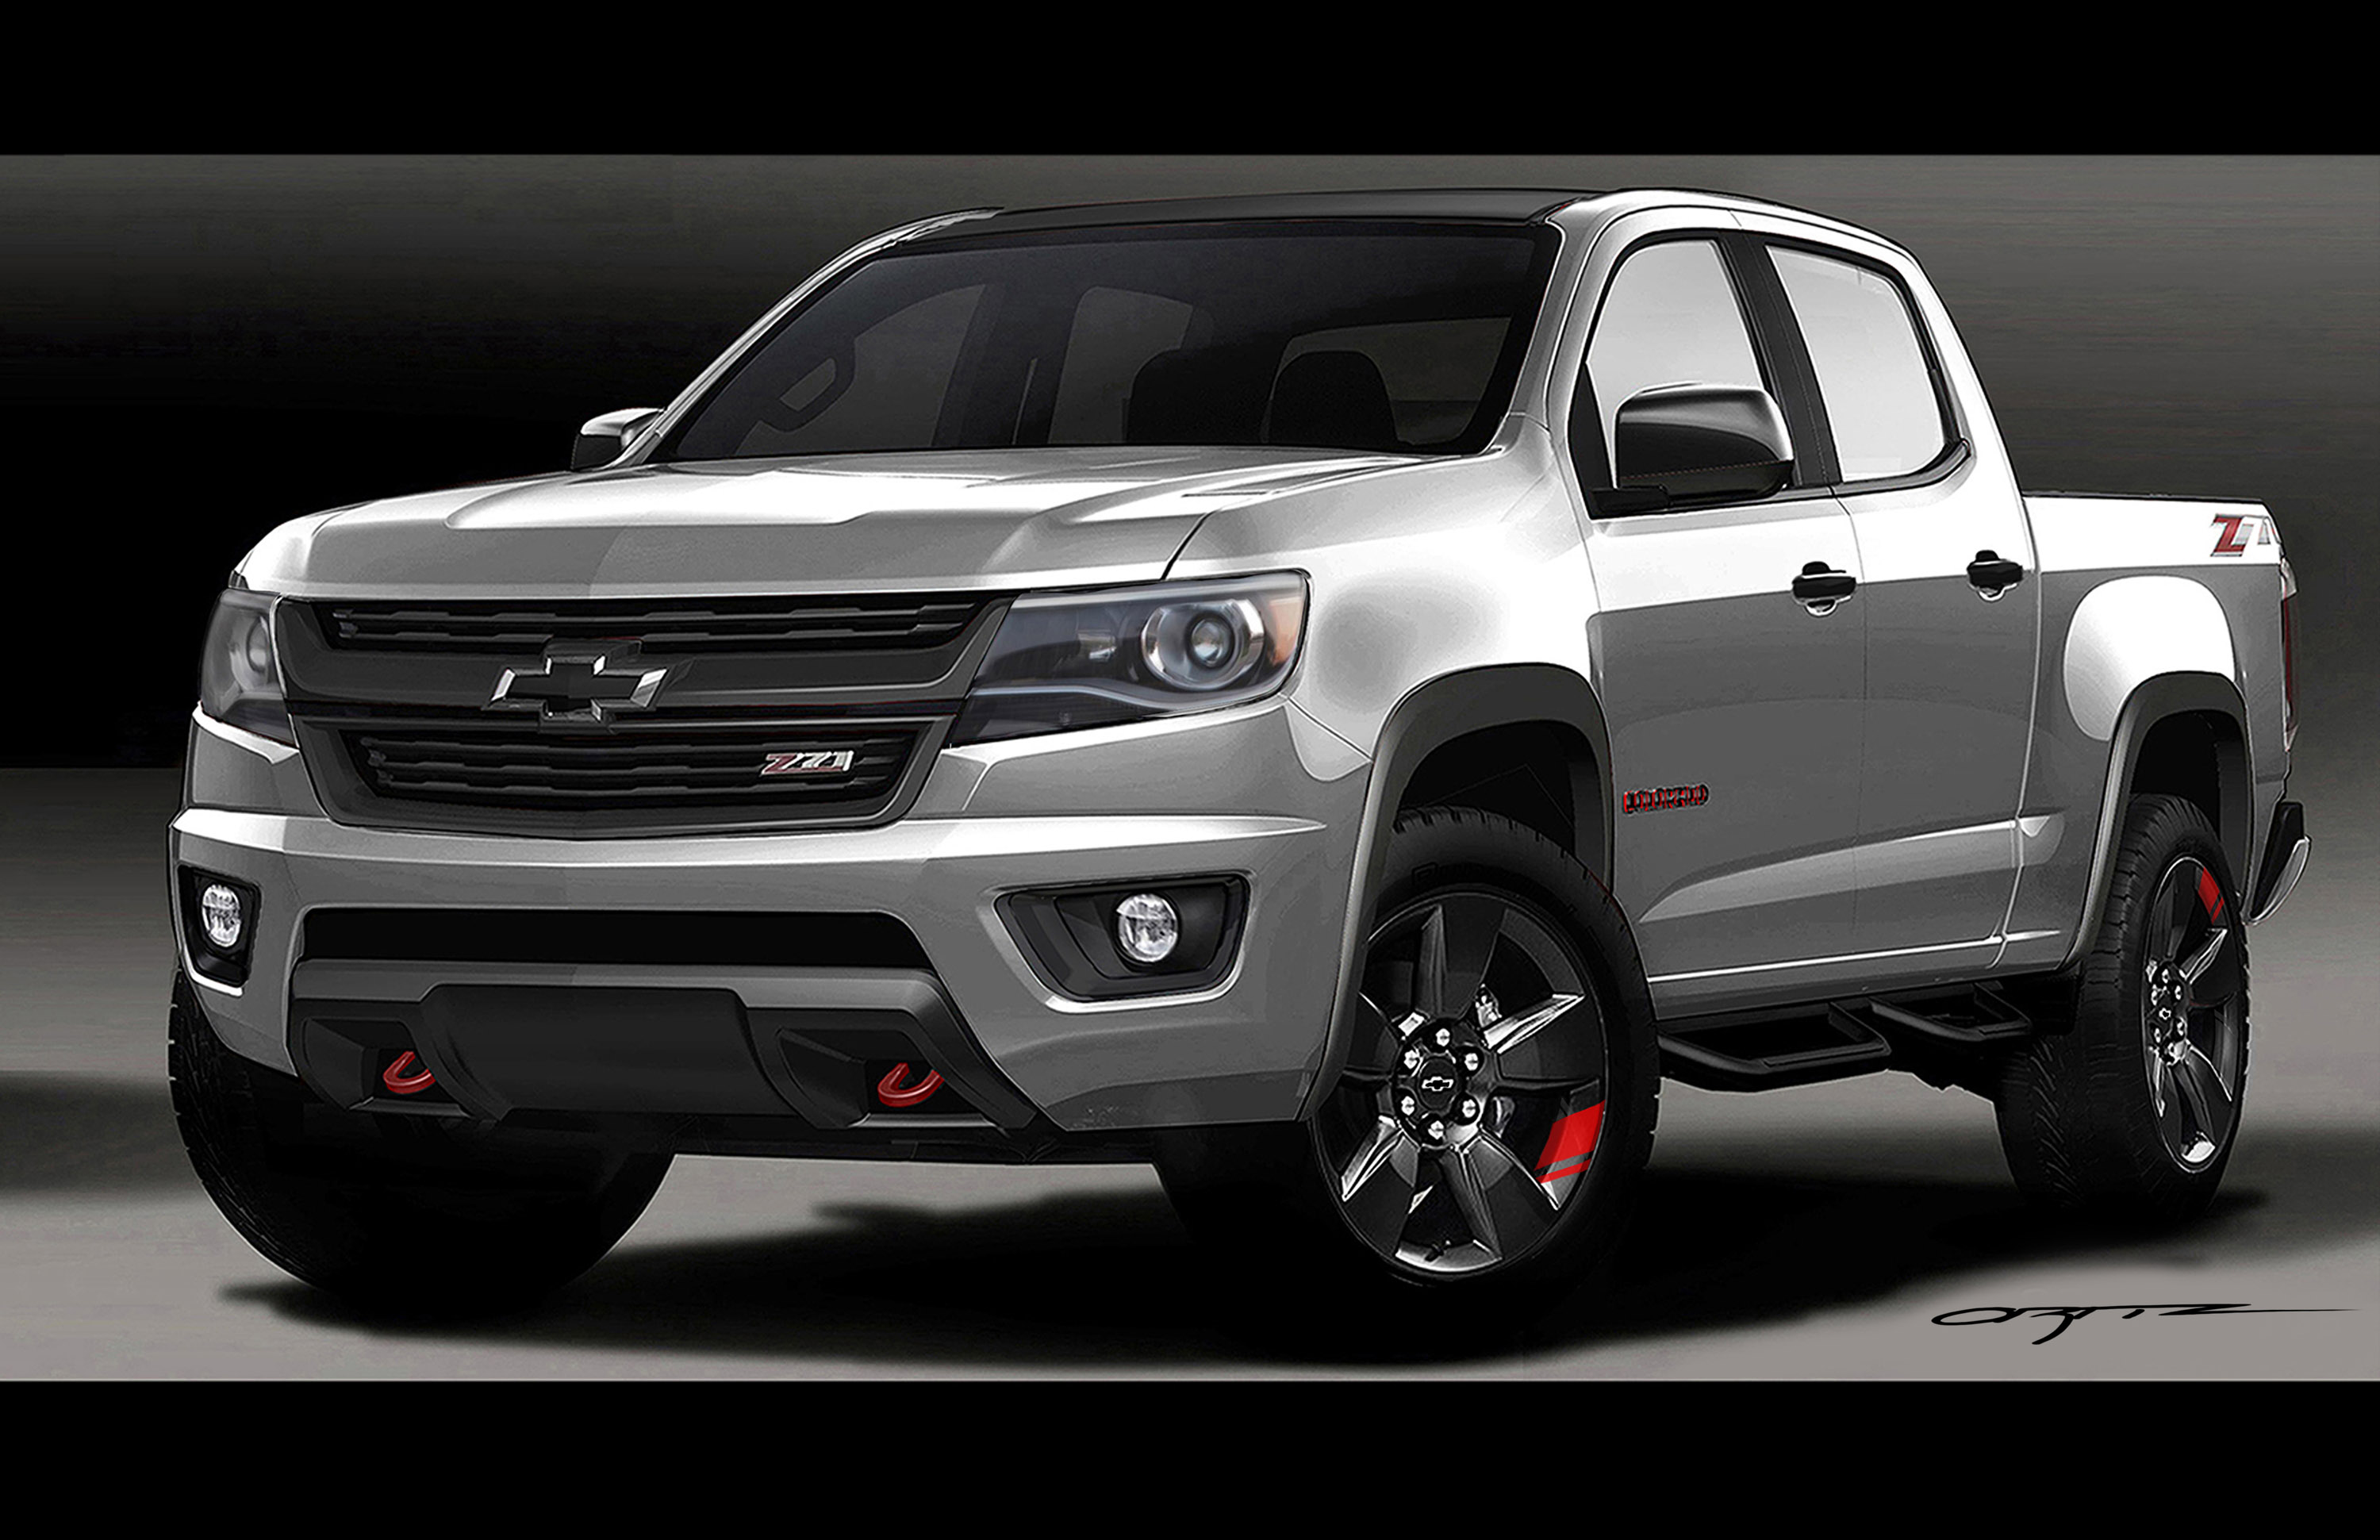 Chevrolet to Show Unique Red Line Series Concept Vehicles ...